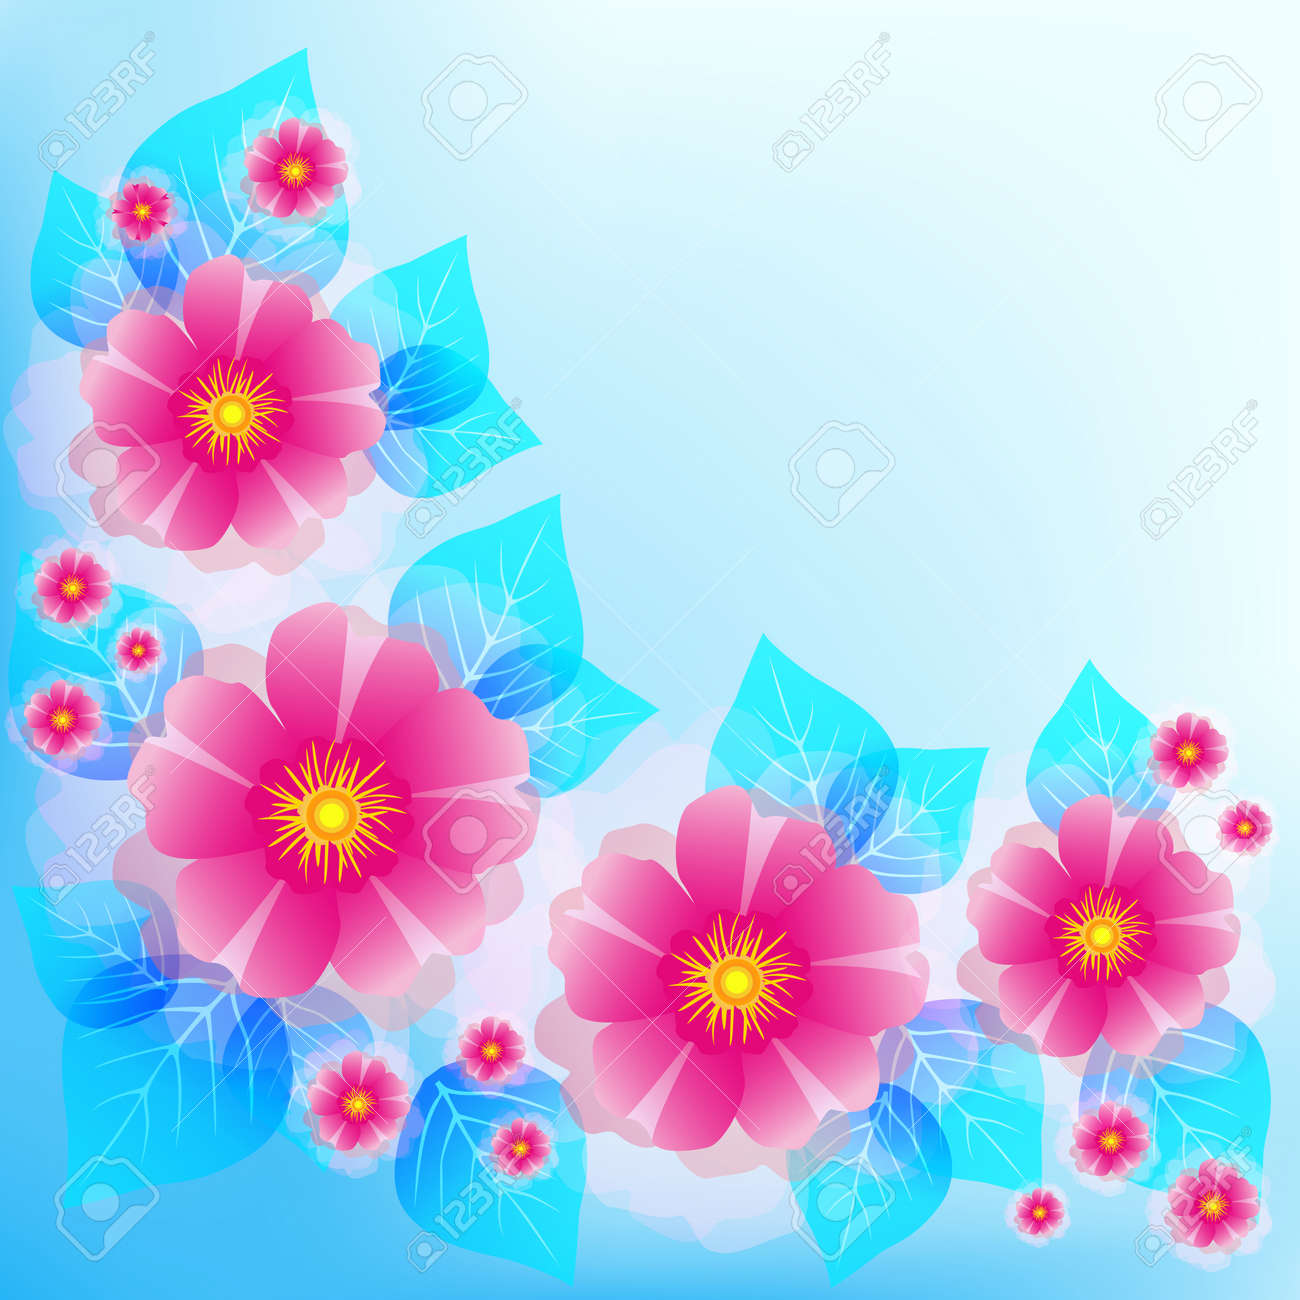 Festive Romantic Light Blue Background With Pink Flowers And